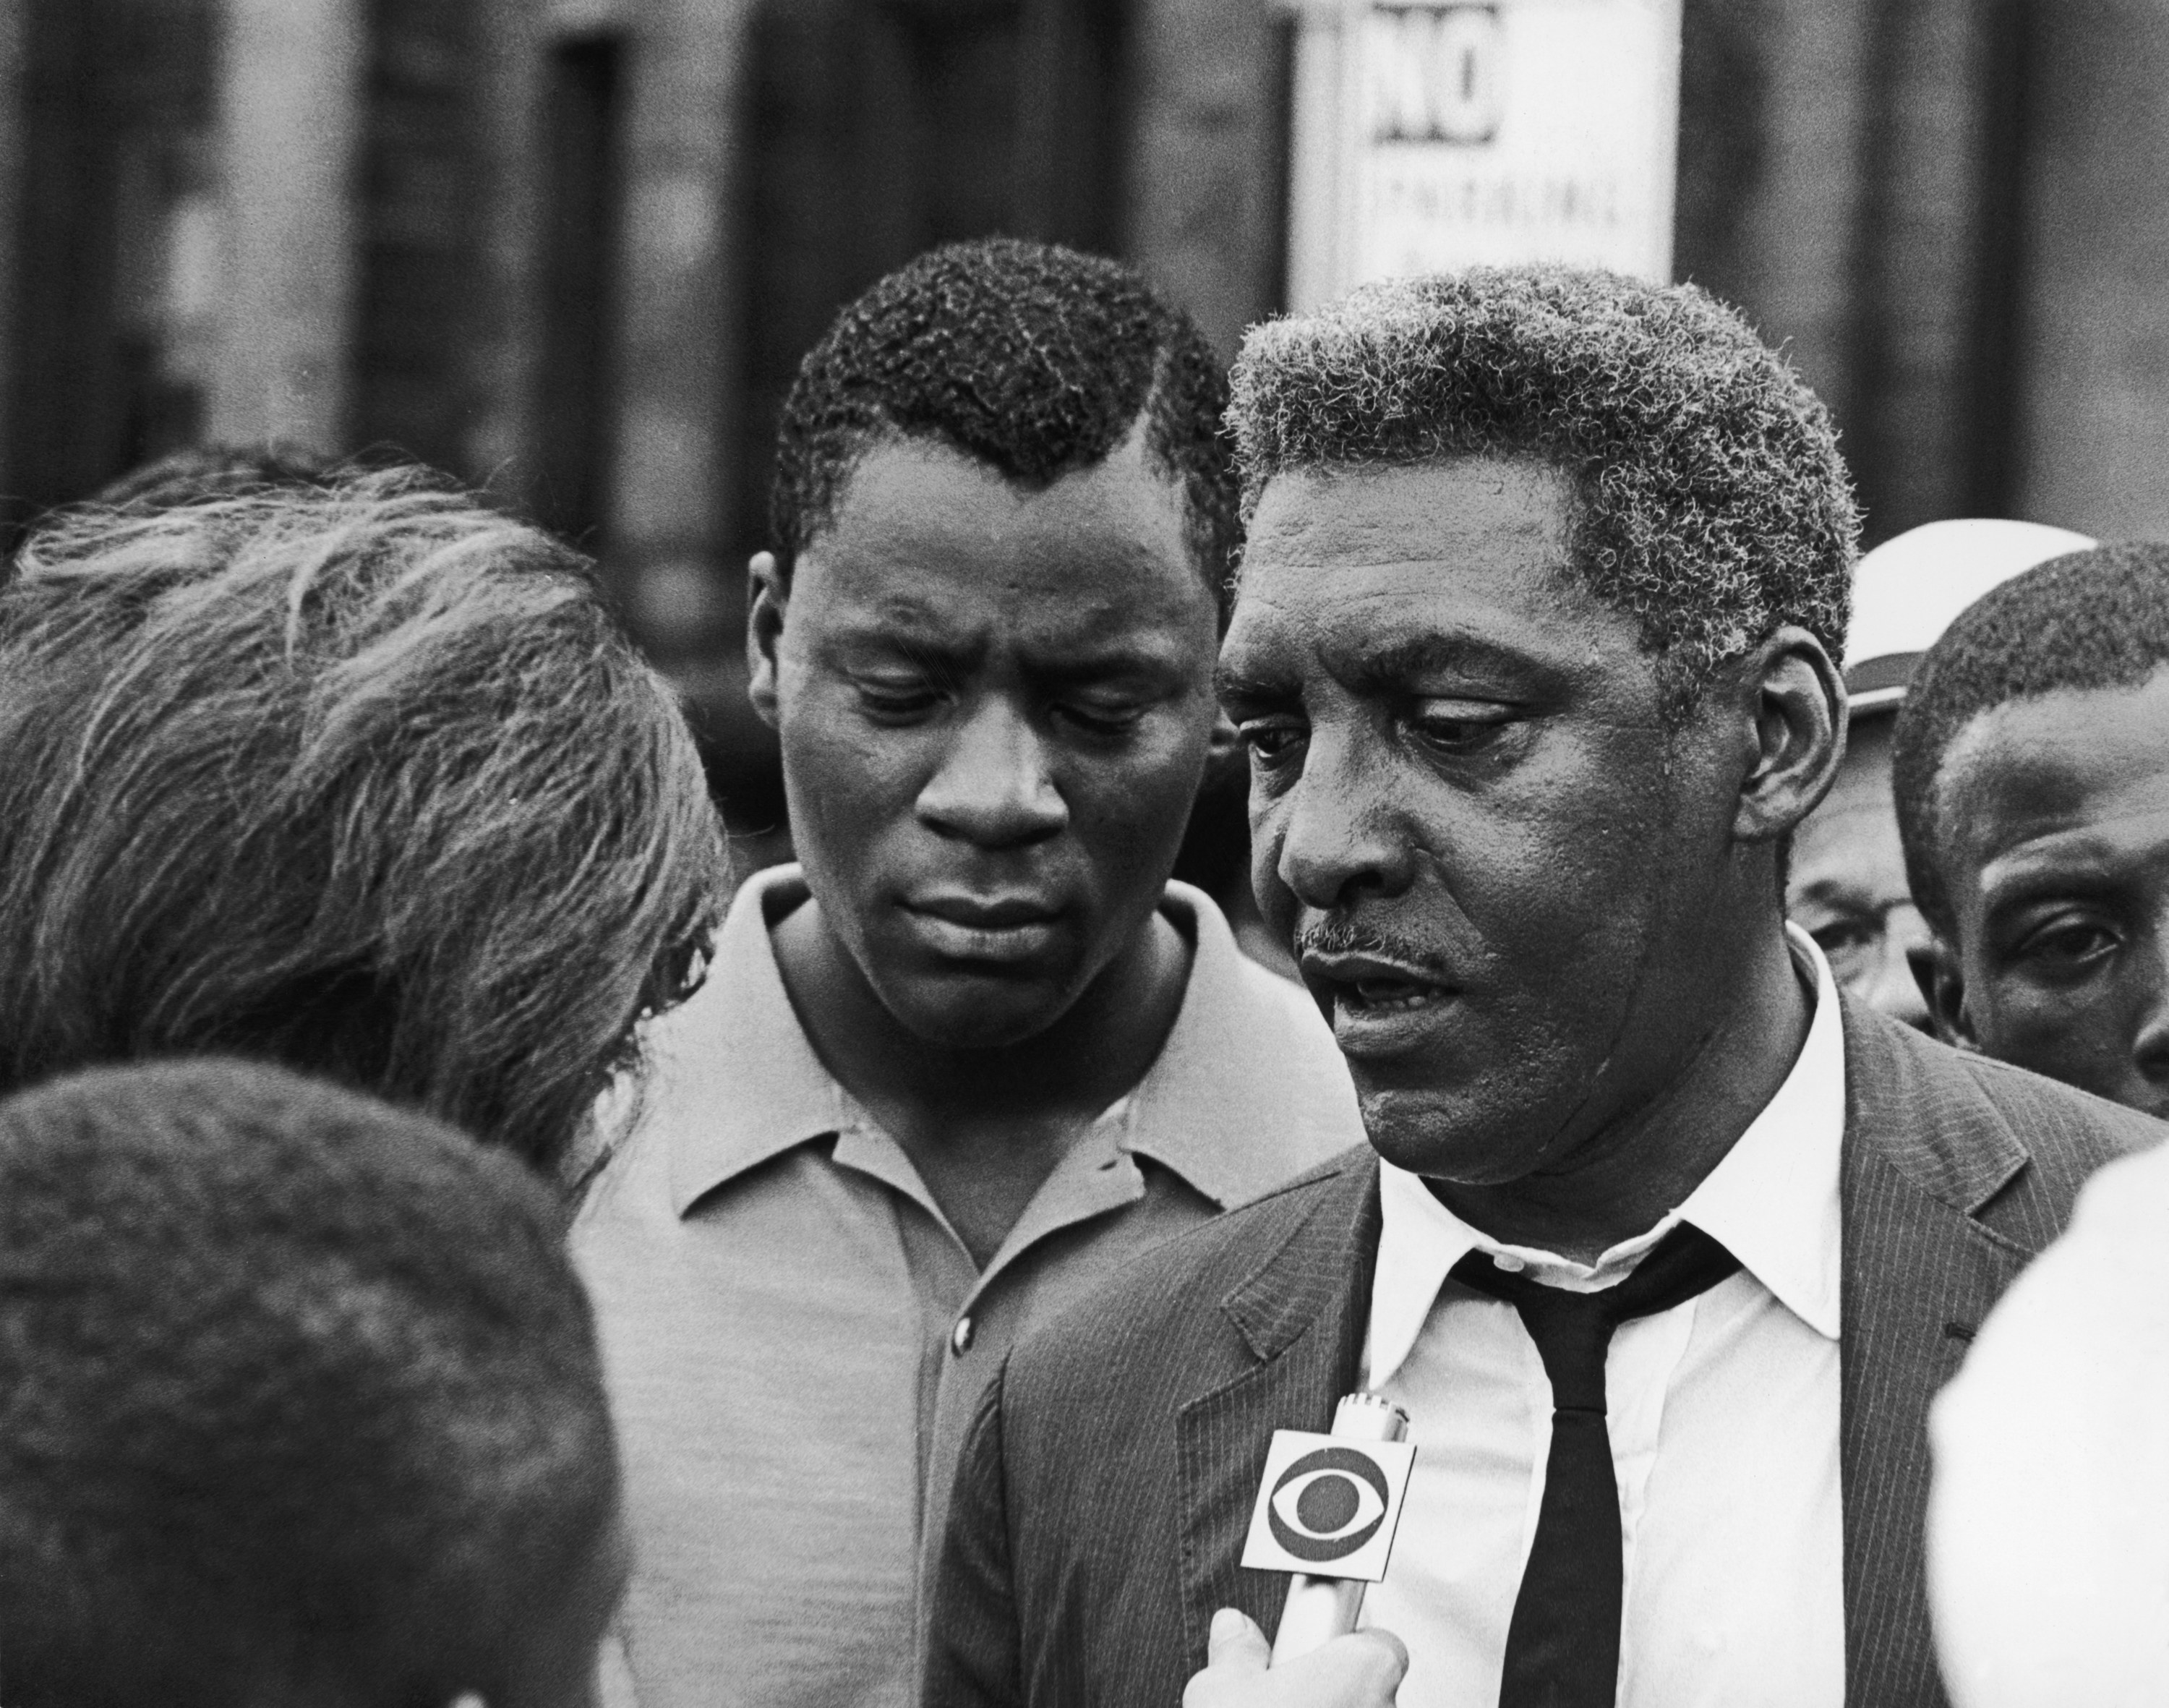 African-American civil rights activist Bayard Rustin (1912 - 1987) talks to a reporter during the Harlem Riots in Manhattan, 23rd July 1964.